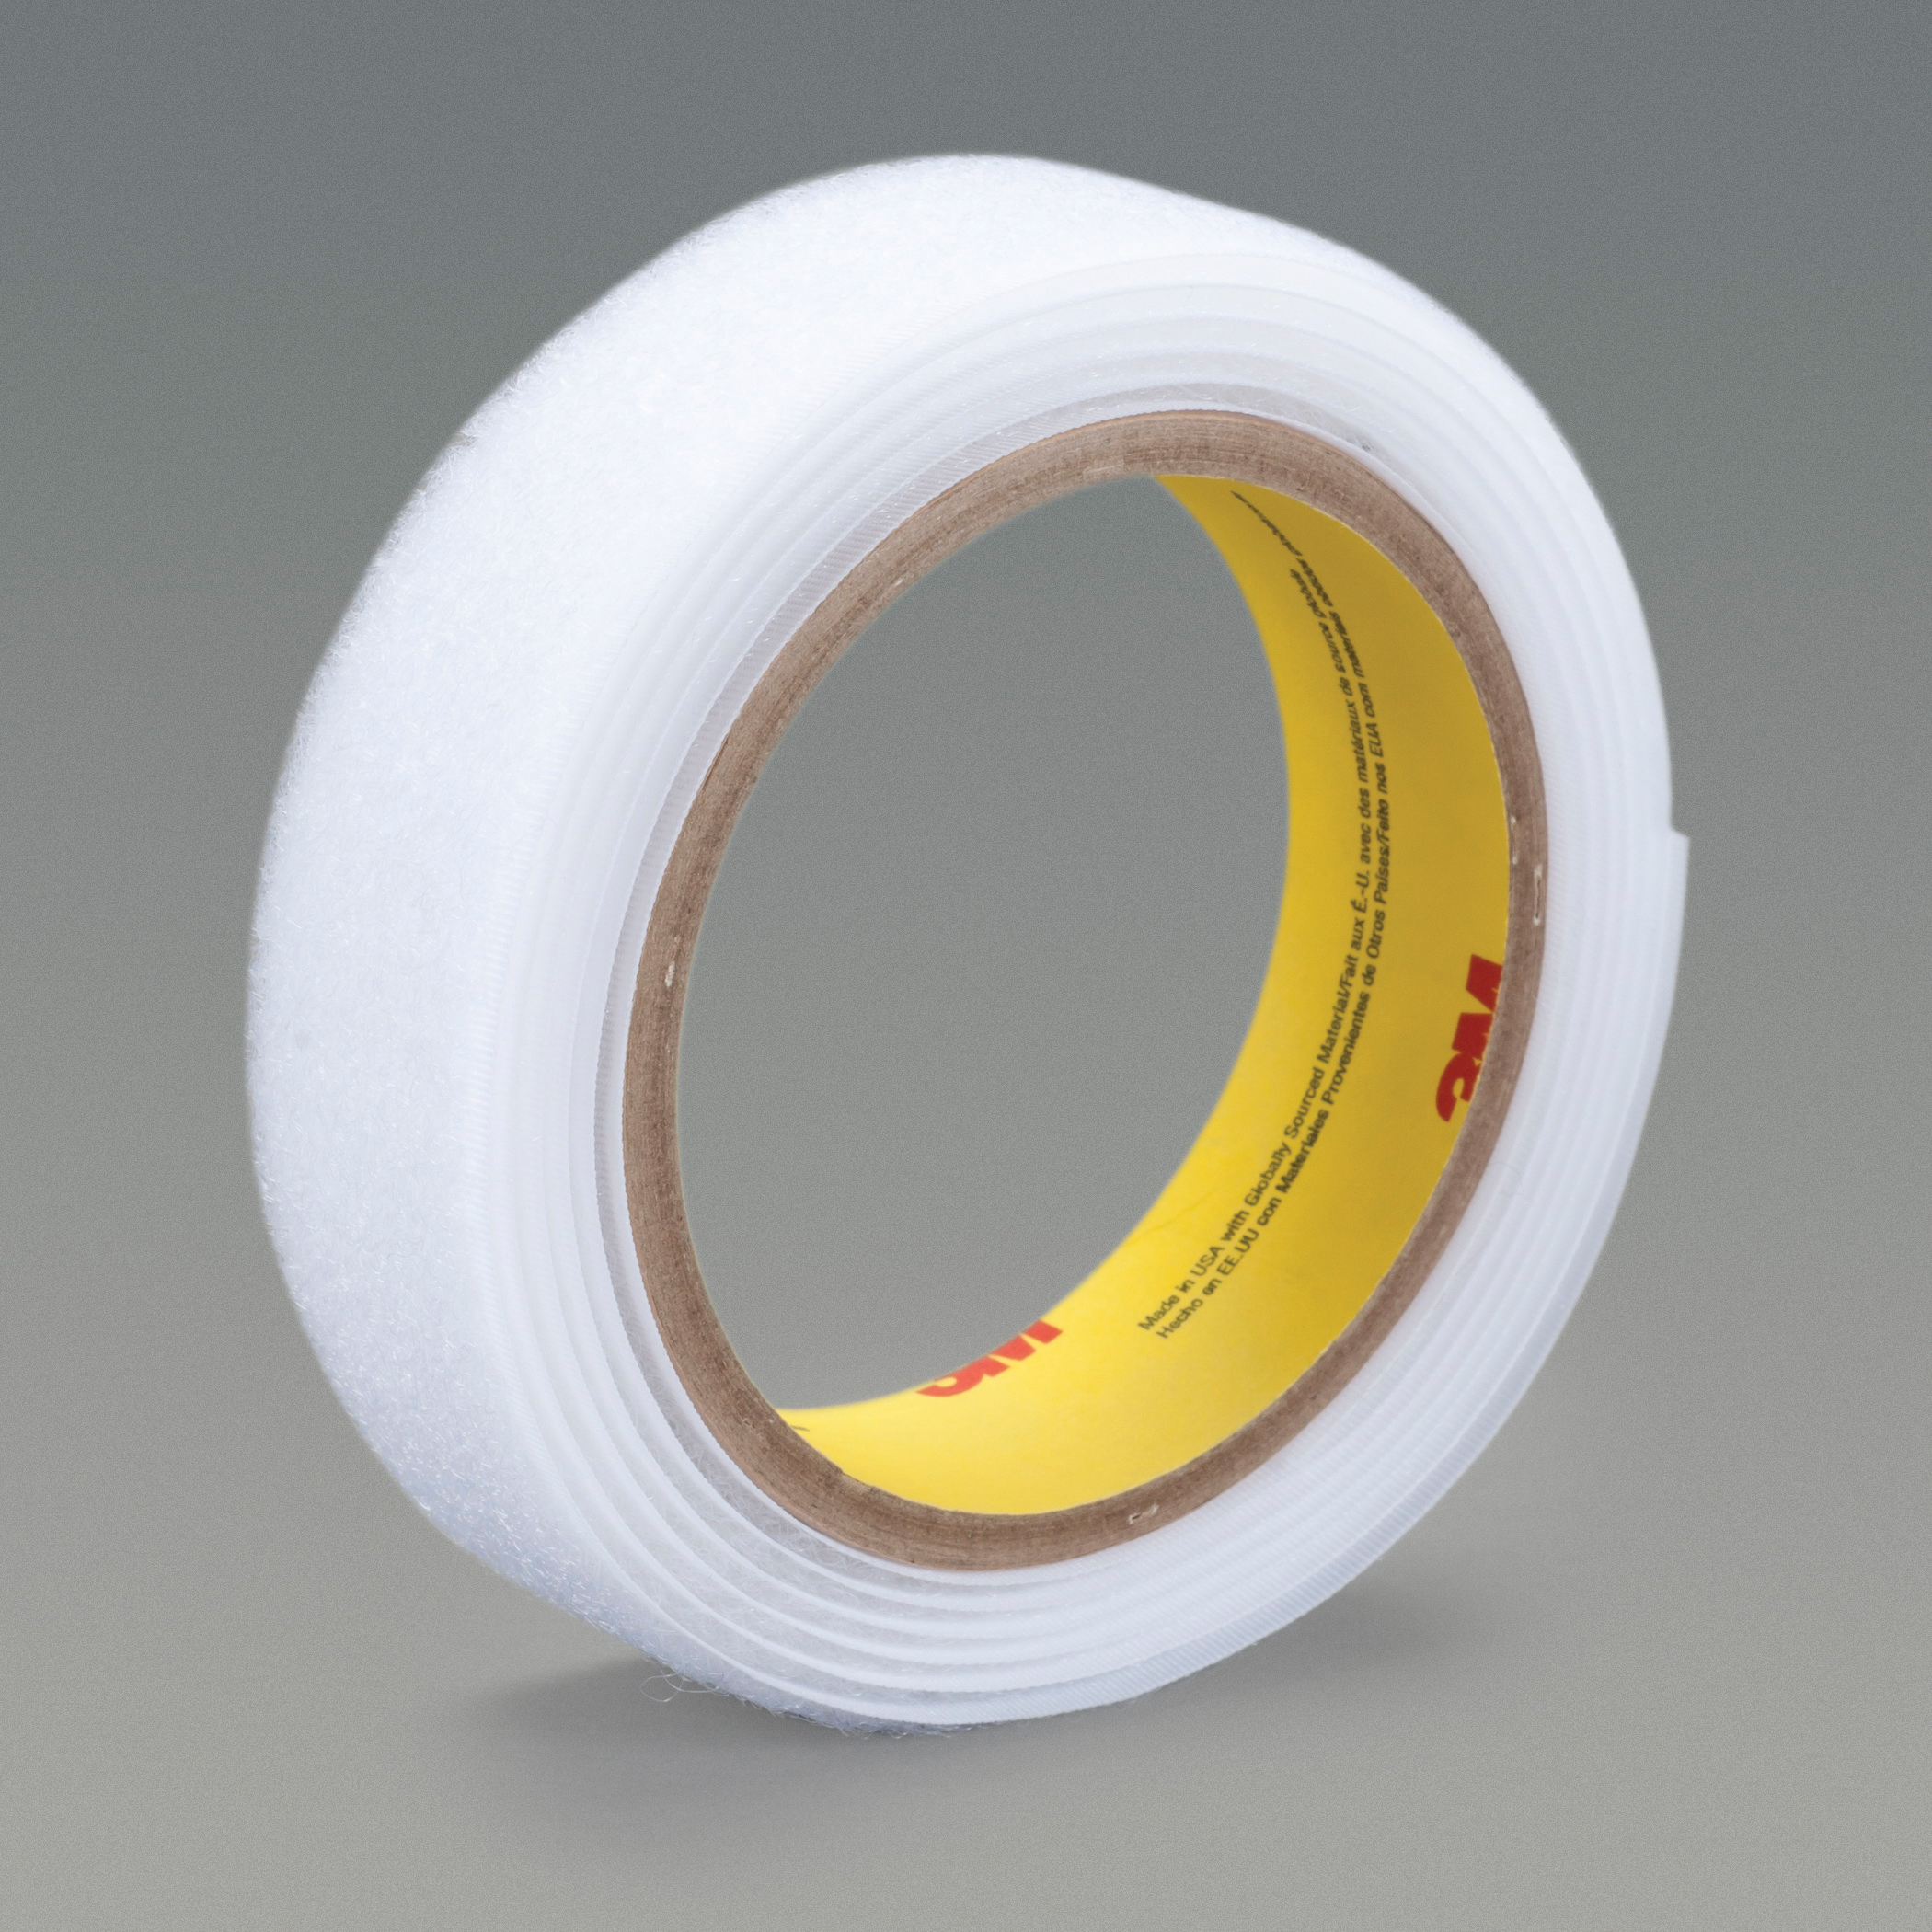 3M™ 021200-86406 Reclosable Hook Fastener Tape, 50 yd L x 1 in W, 0.15 in THK Engaged, Acrylic Adhesive, Woven Nylon Backing, White